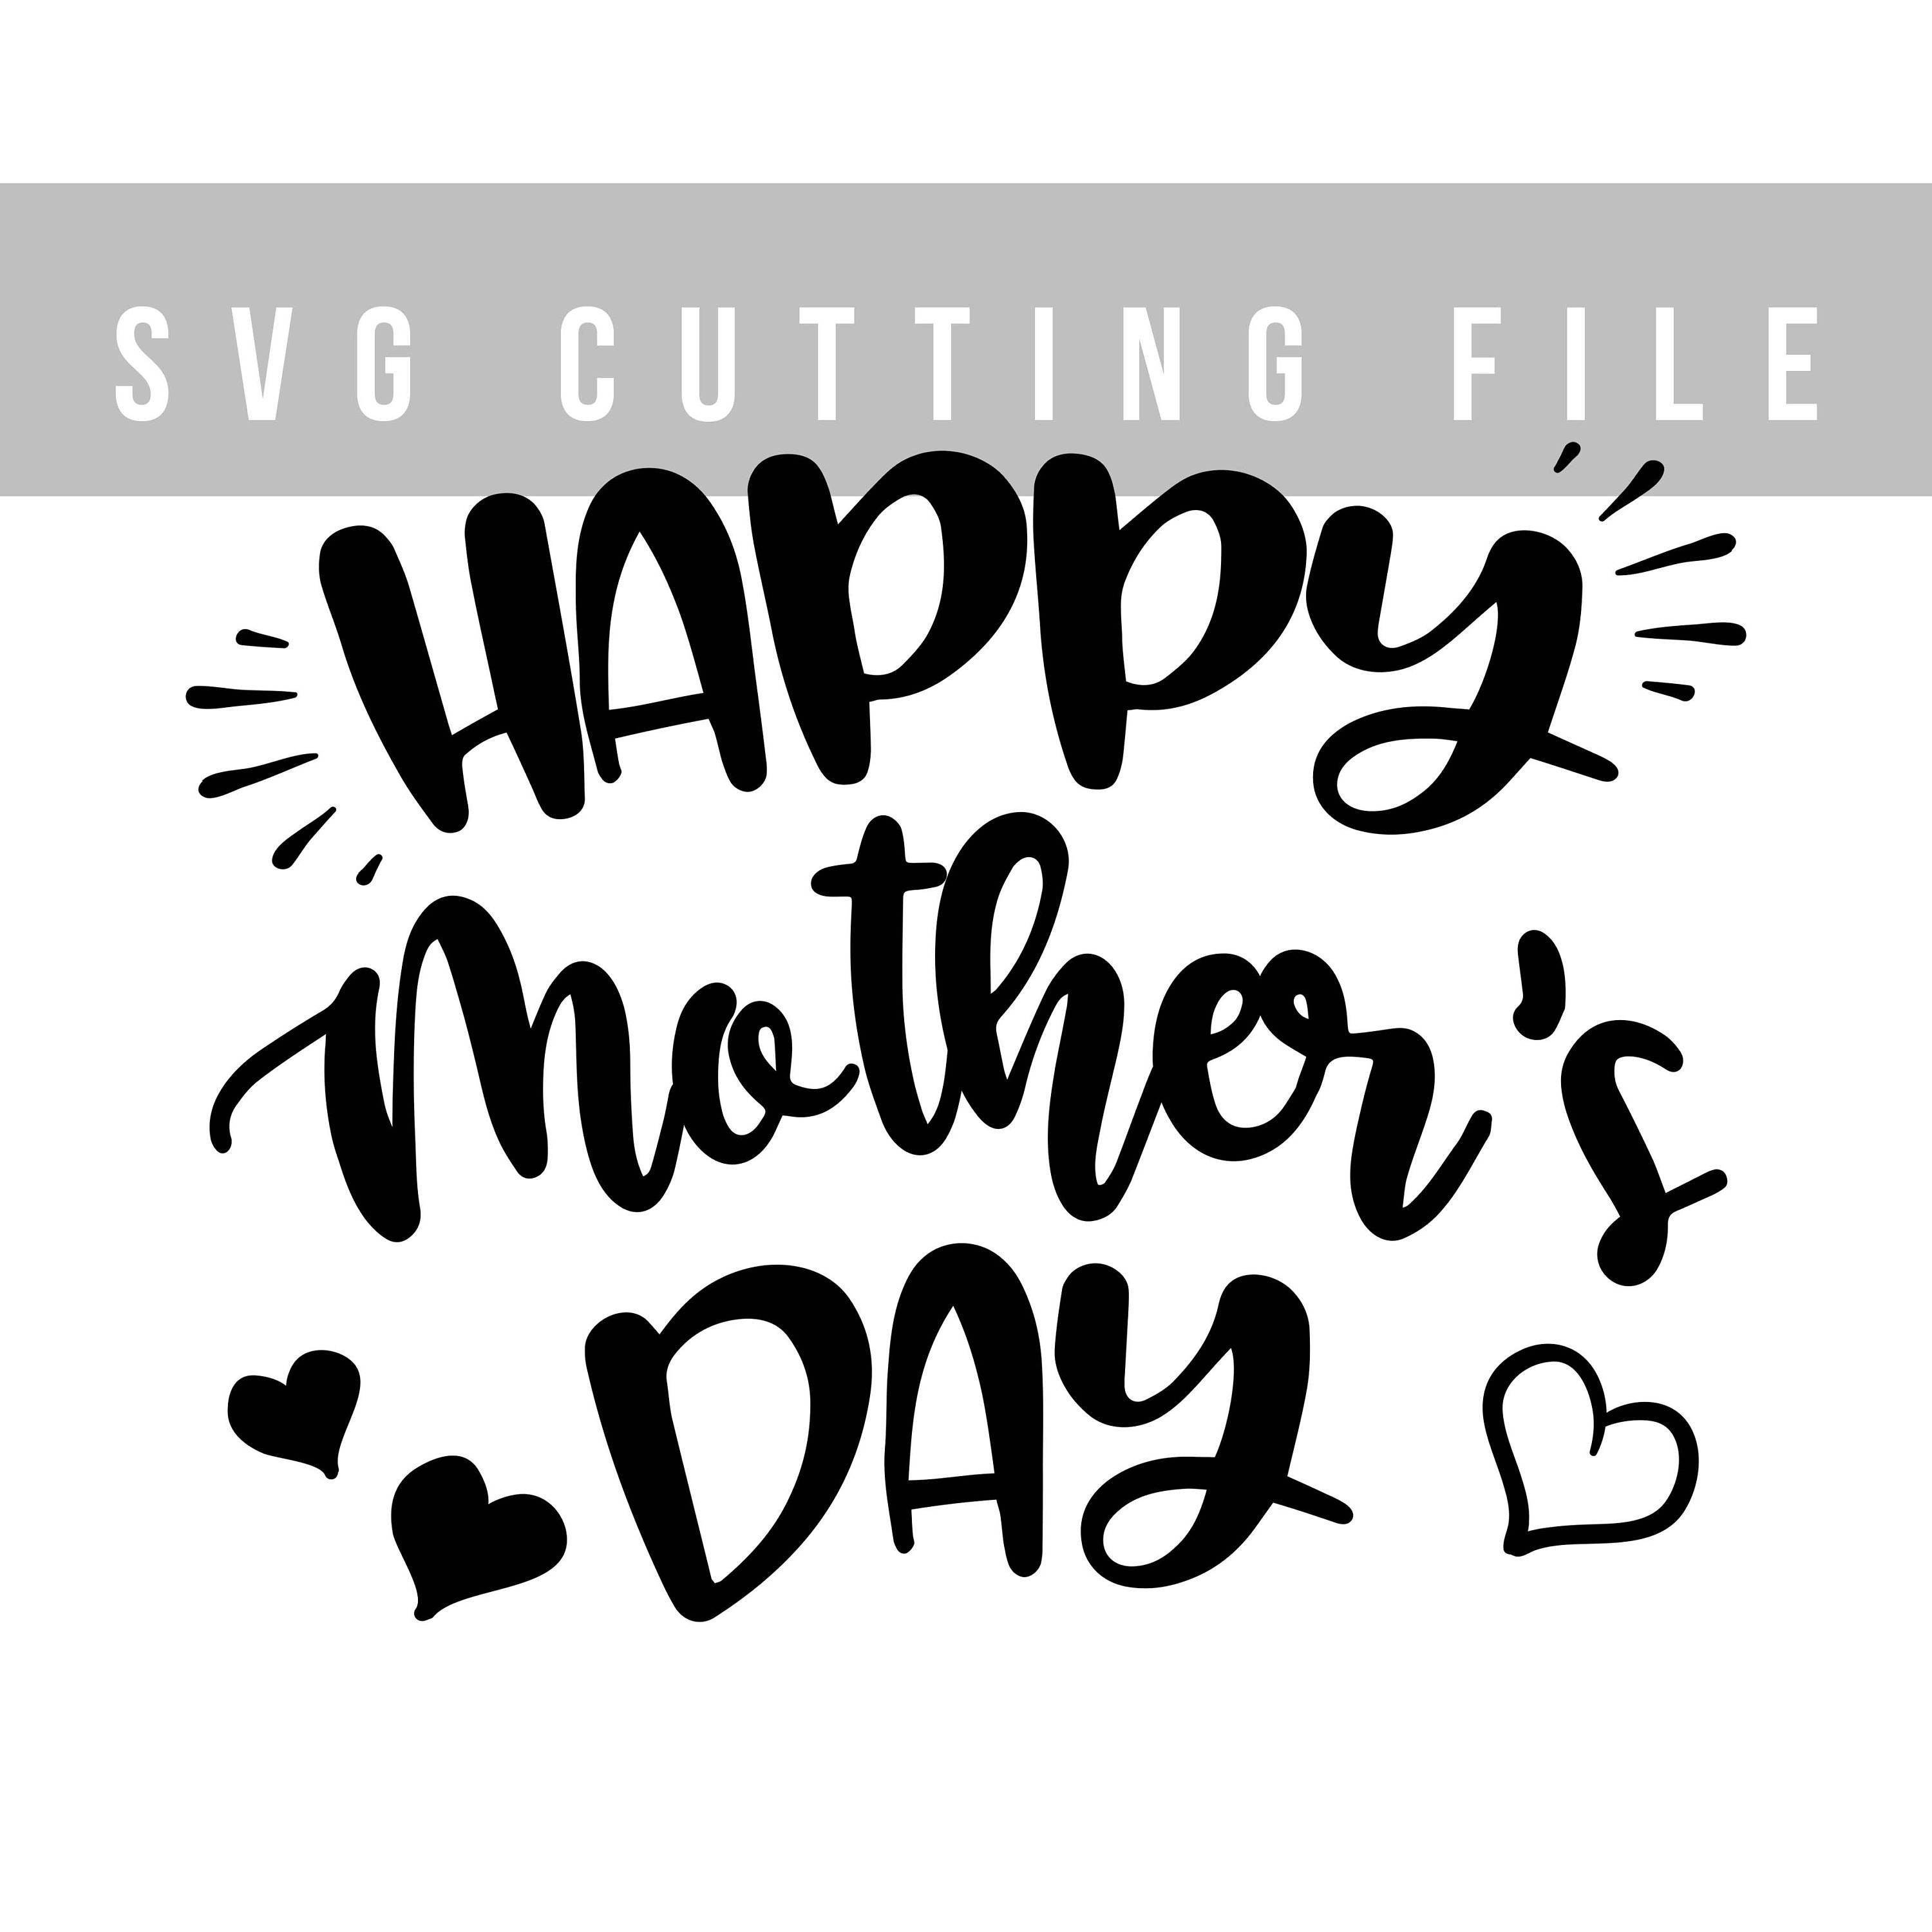 Free Ready in ai, svg, eps or psd. Pin On Svg Cutting Files Theblackcatprints SVG, PNG, EPS, DXF File